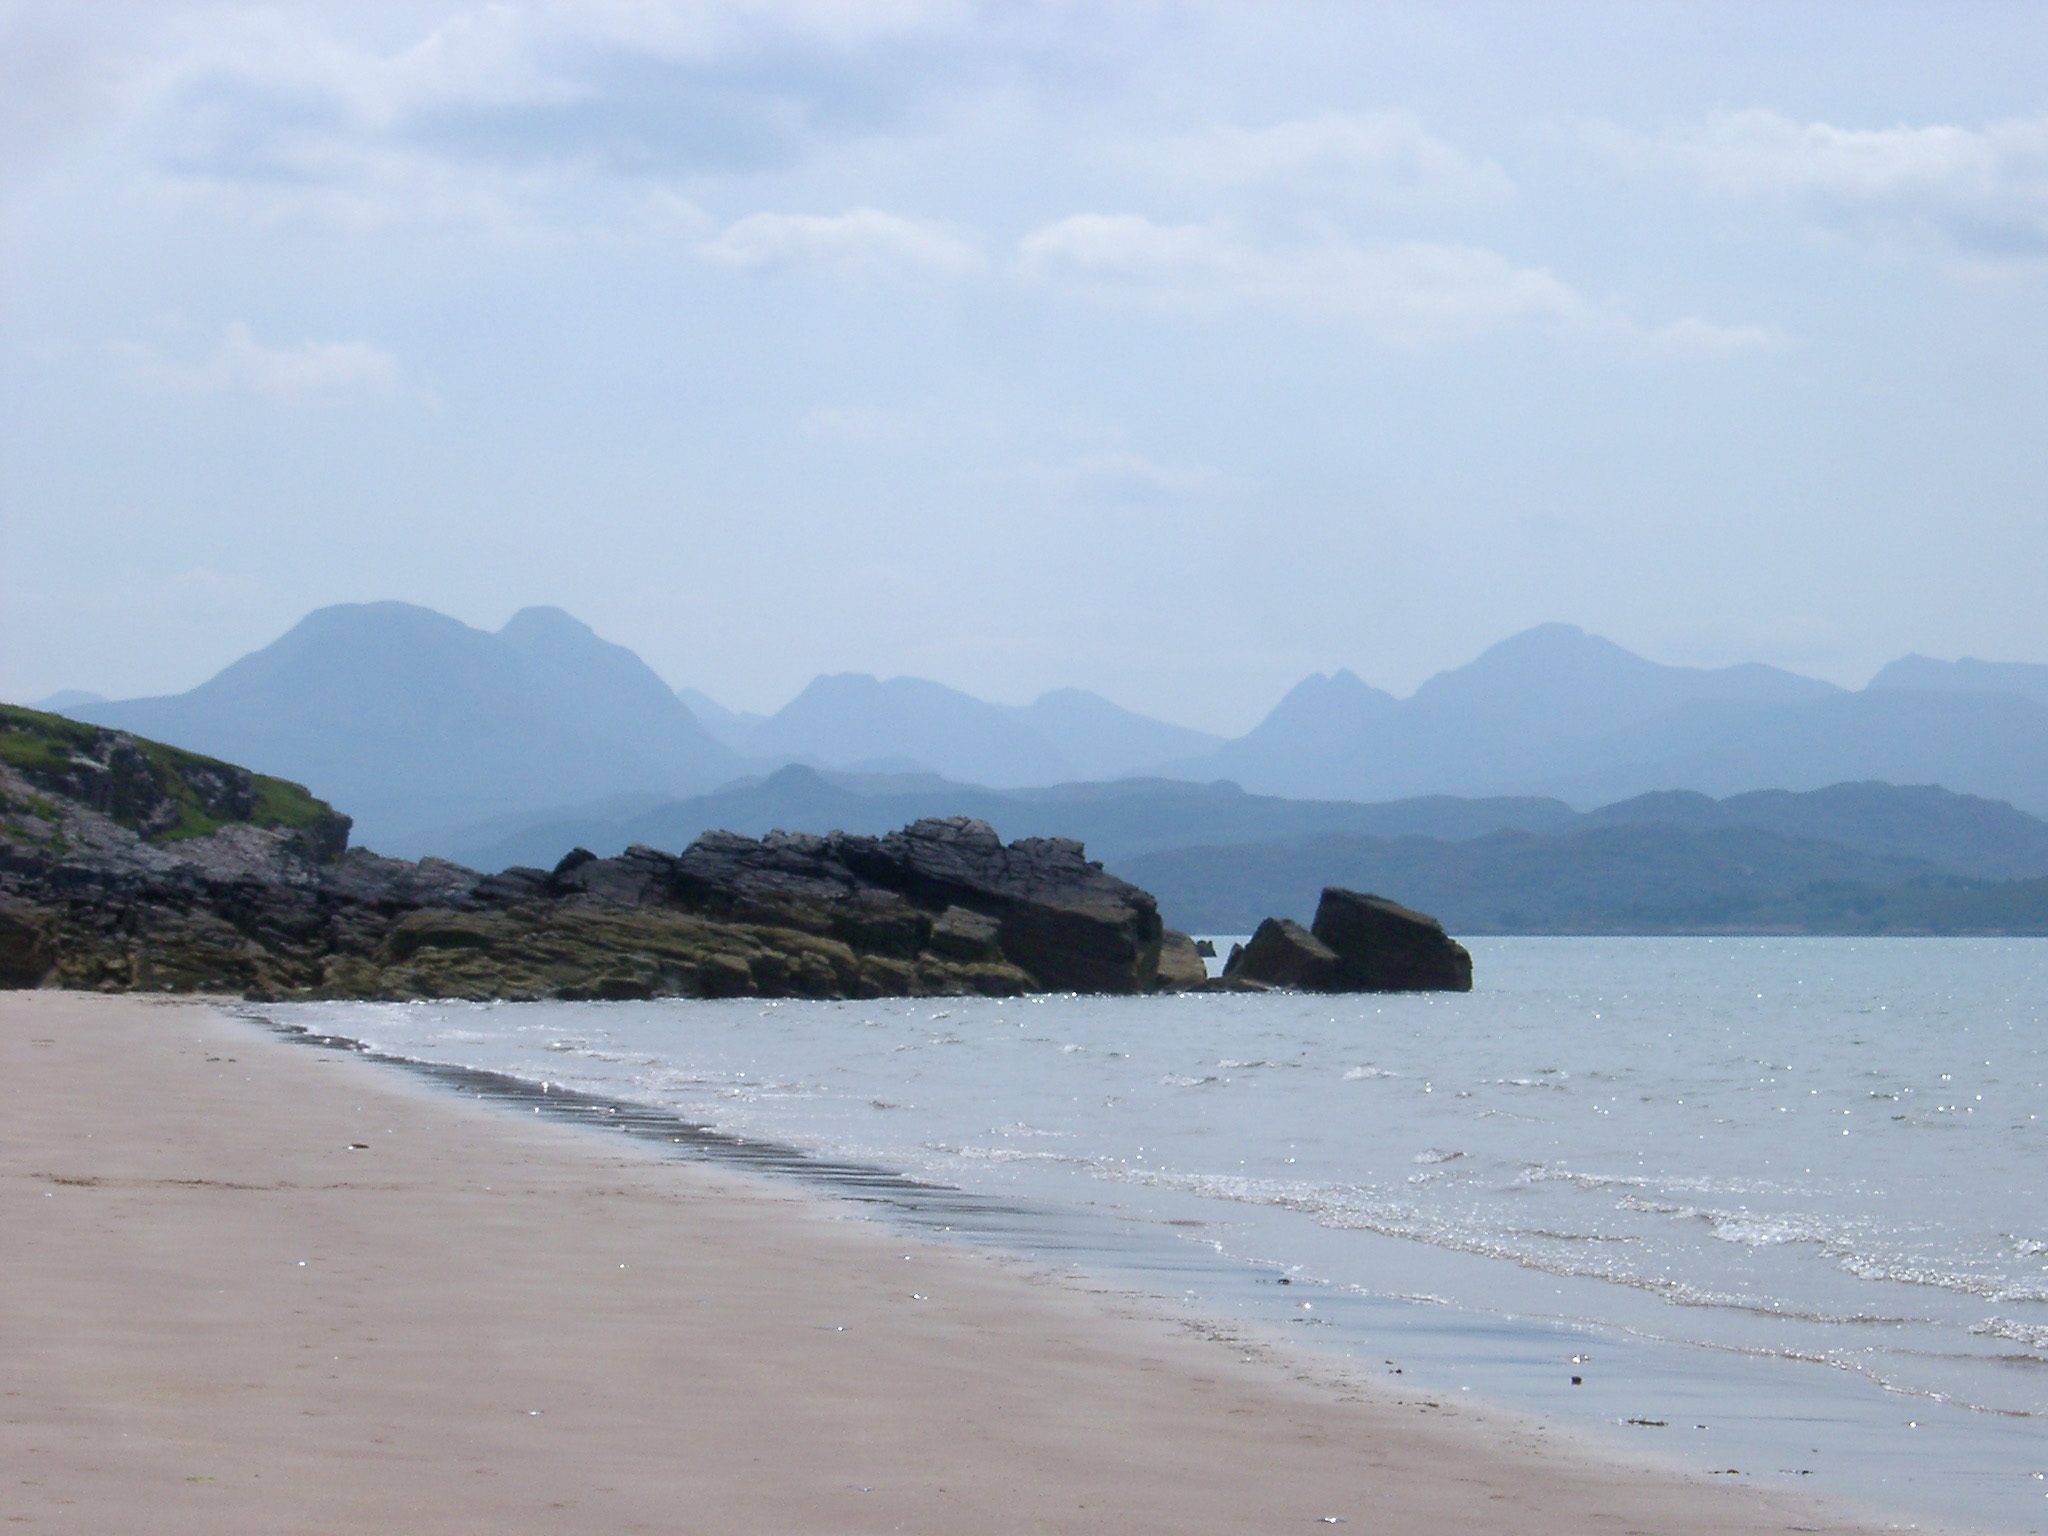 Sandy beach on the shores of Loch Gairloch in the North-West highlands of Scotland on a misty day